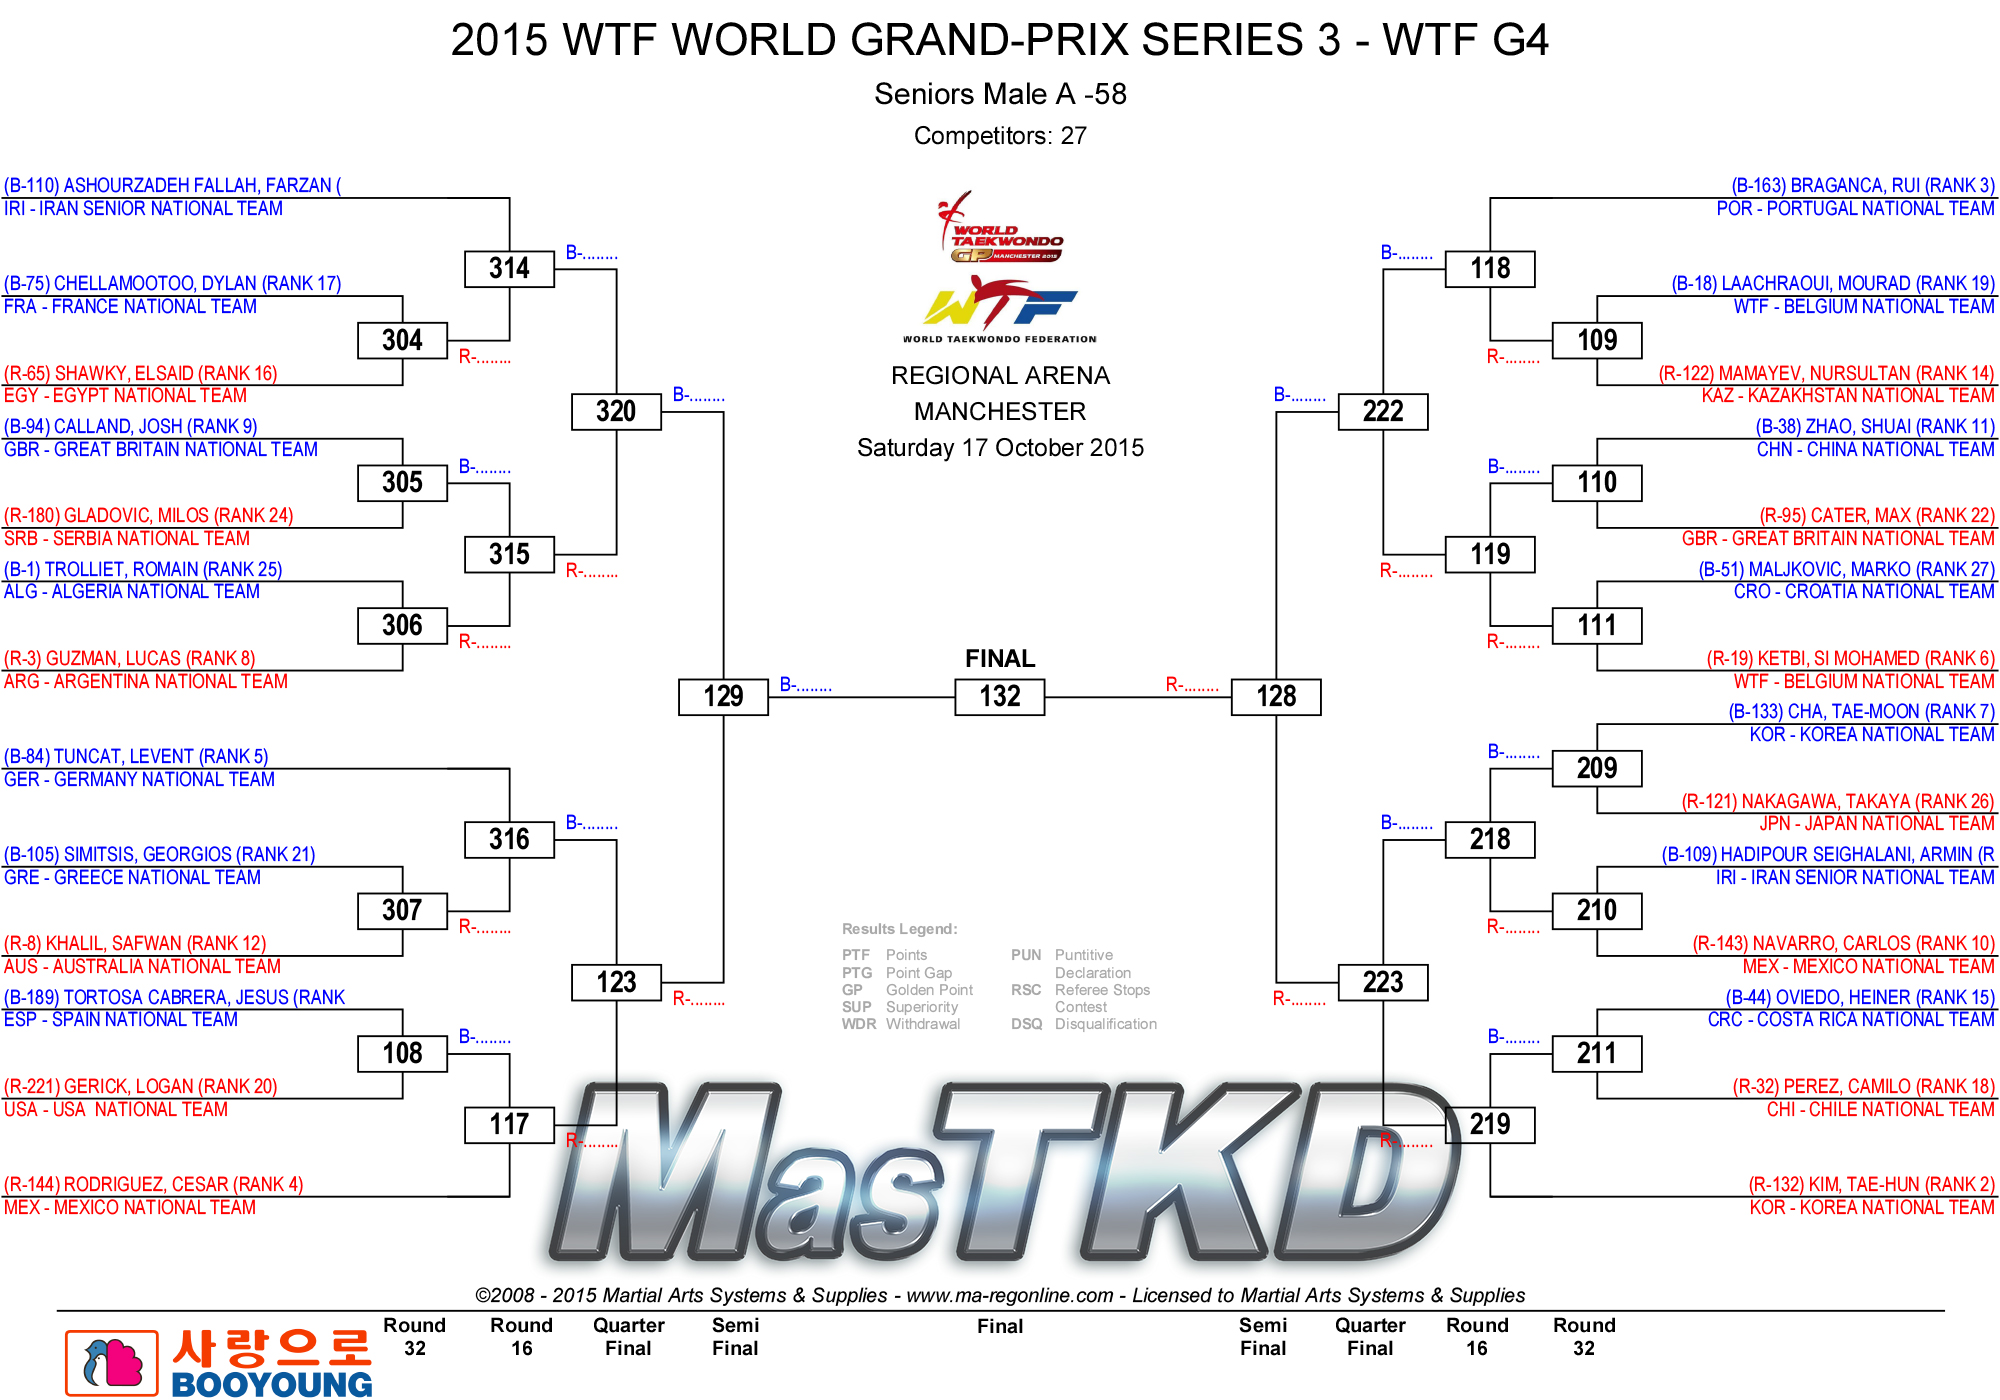 M-58_2015_WTF_WORLD_GRAND-PRIX_SERIES_3_DRAW_D2